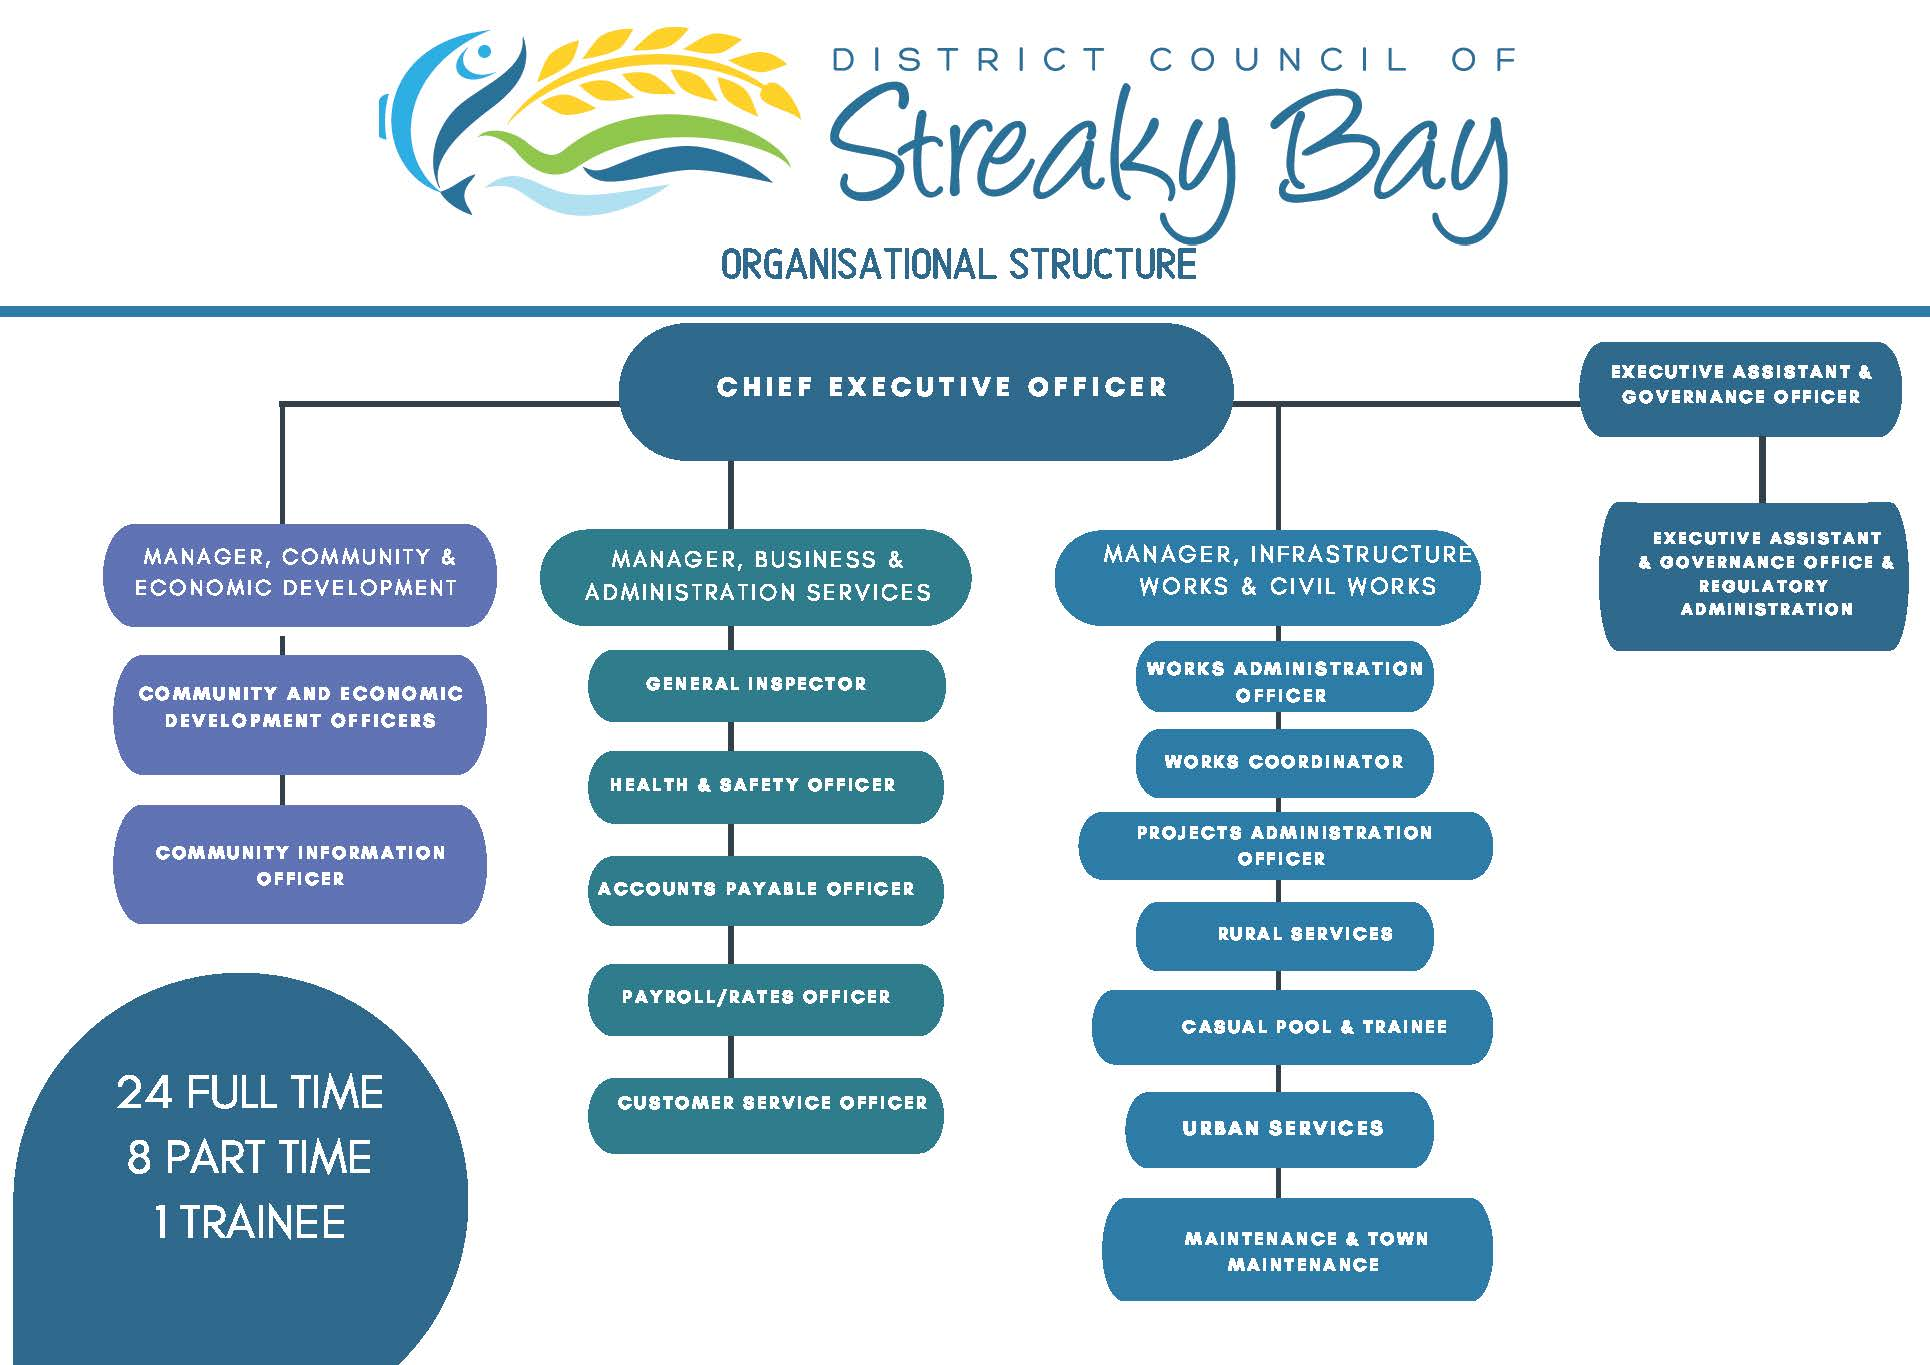 Council Employee Organisation Structure without Names